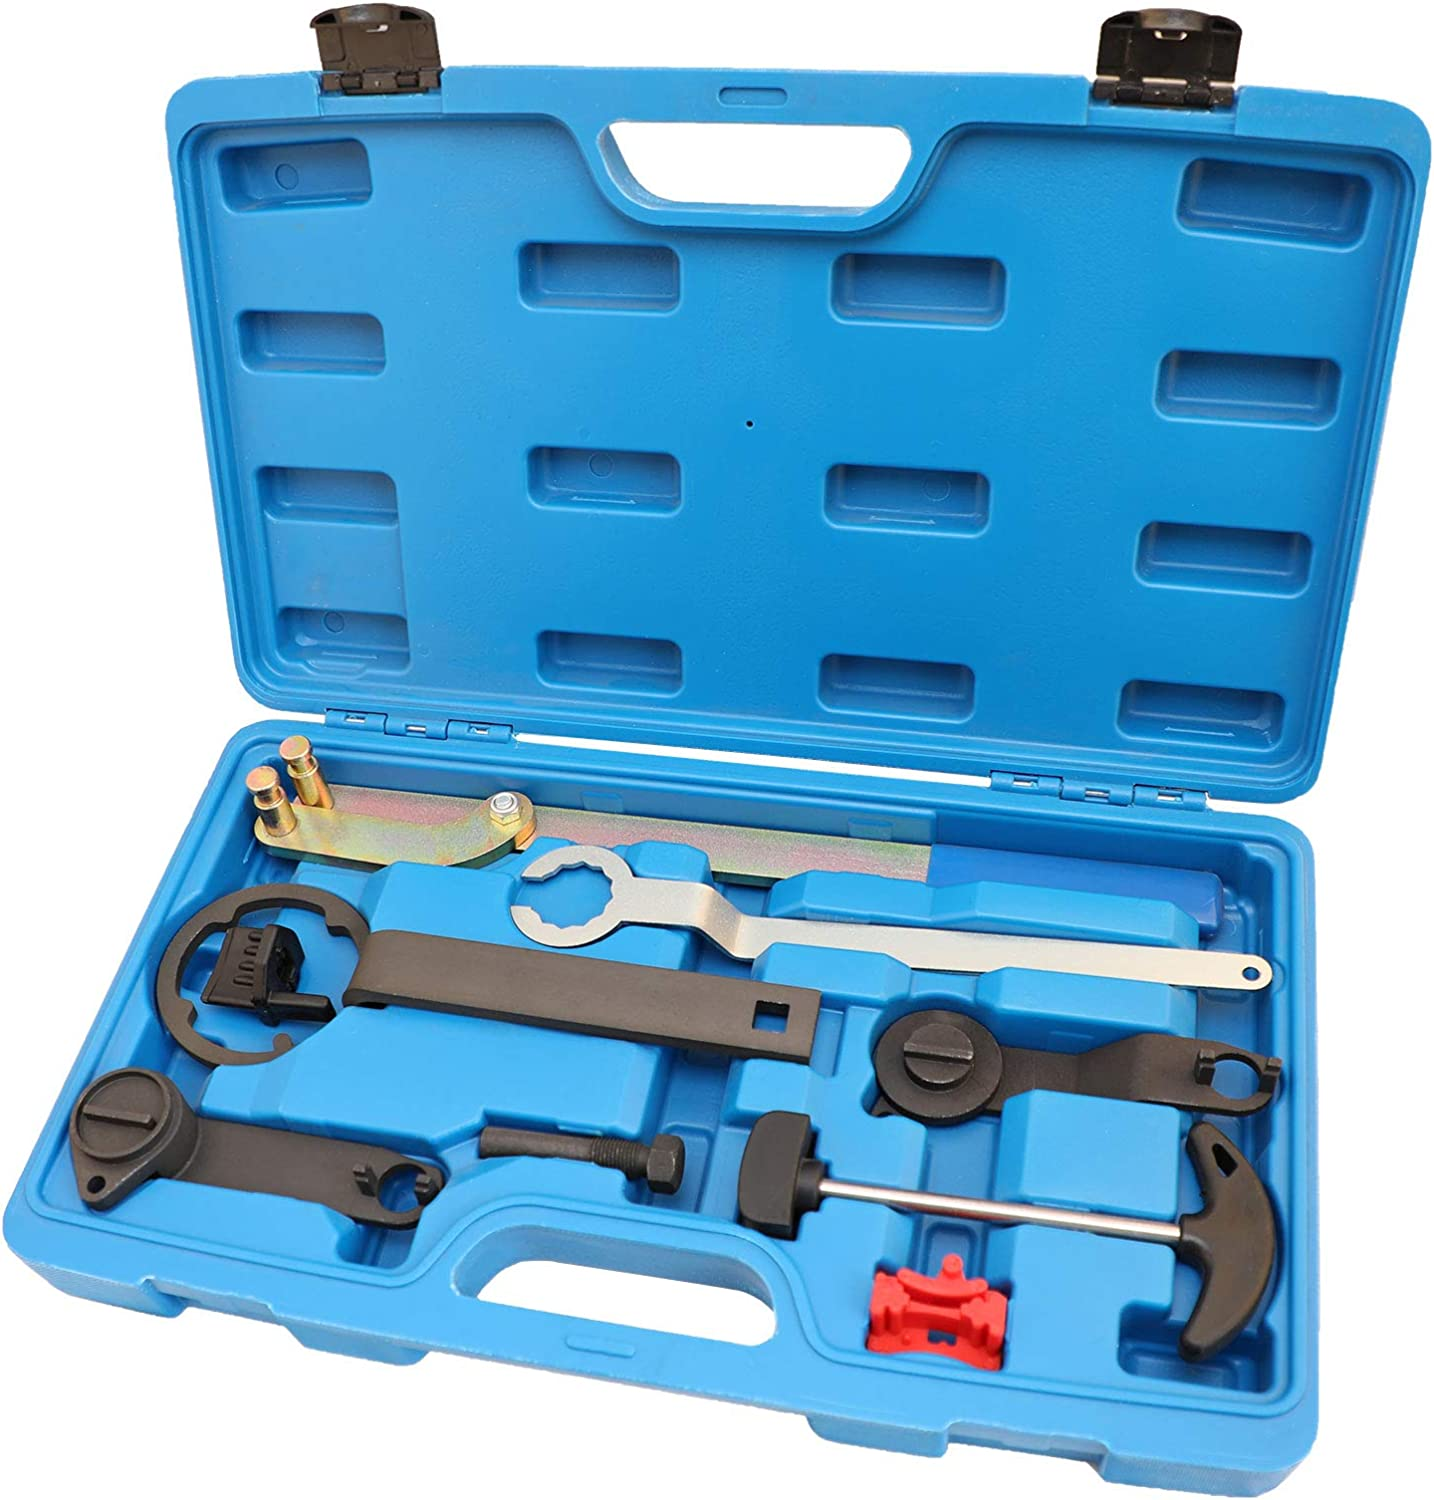 MR CARTOOL EA211 Engine T10477 Timing Tool for Volkswagen Jetta LaVida